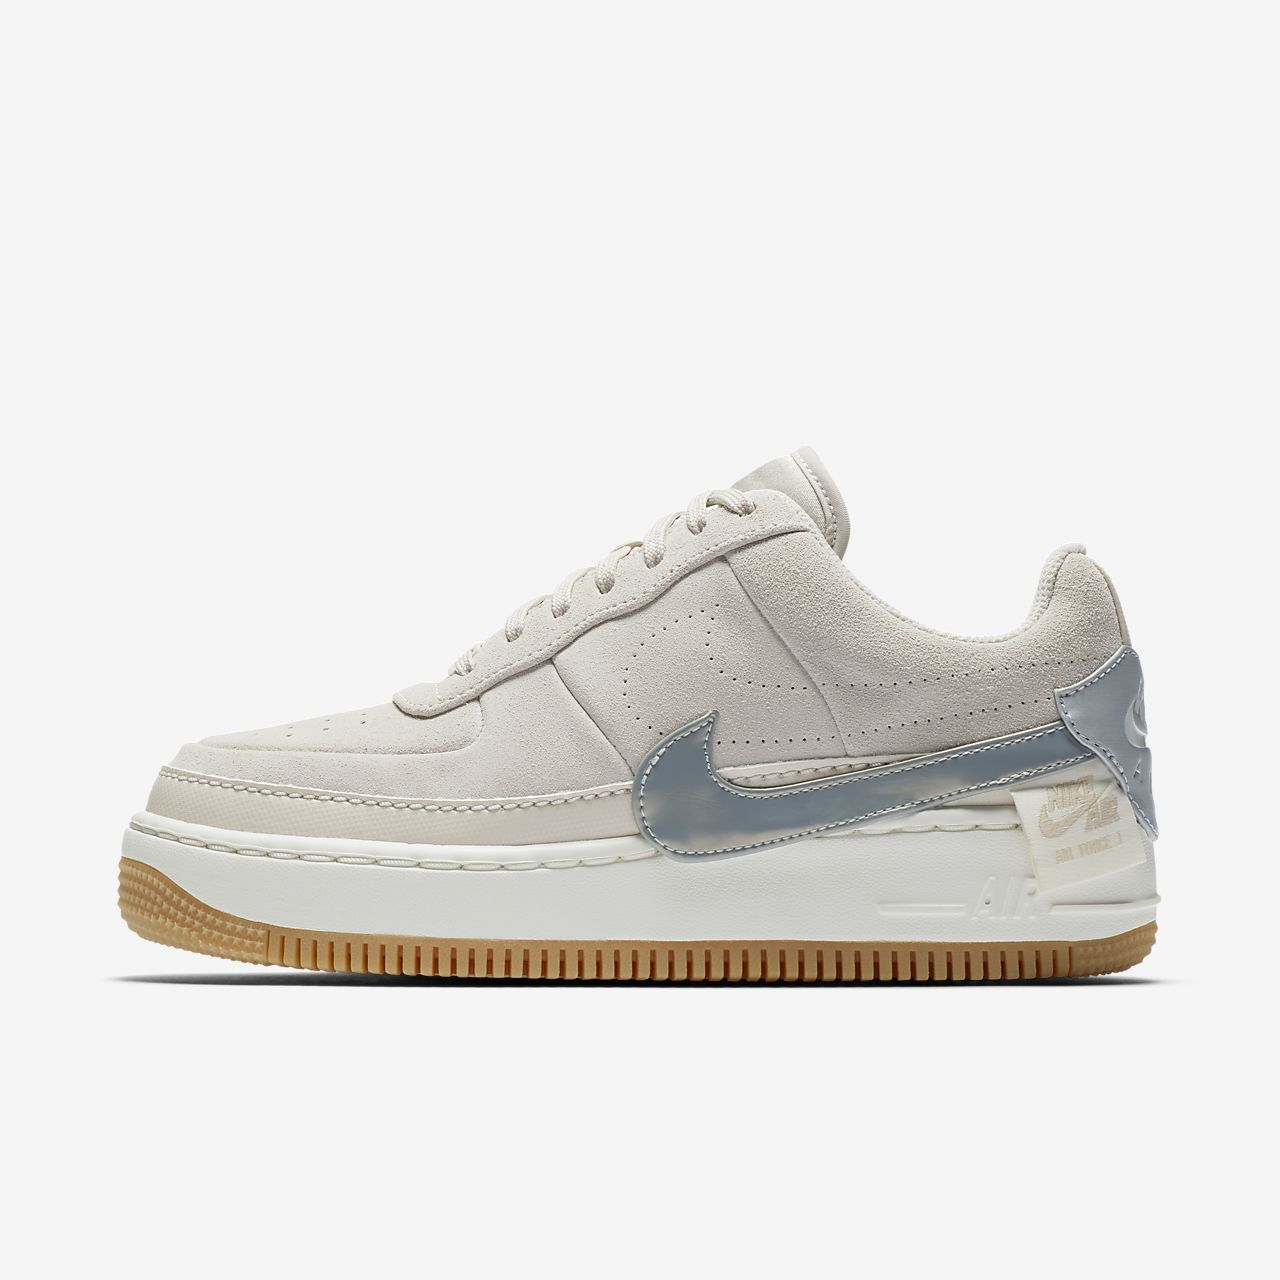 premium selection d0821 f4d85 official calzado para mujer nike air force 1 jester 8a9ff 608e1